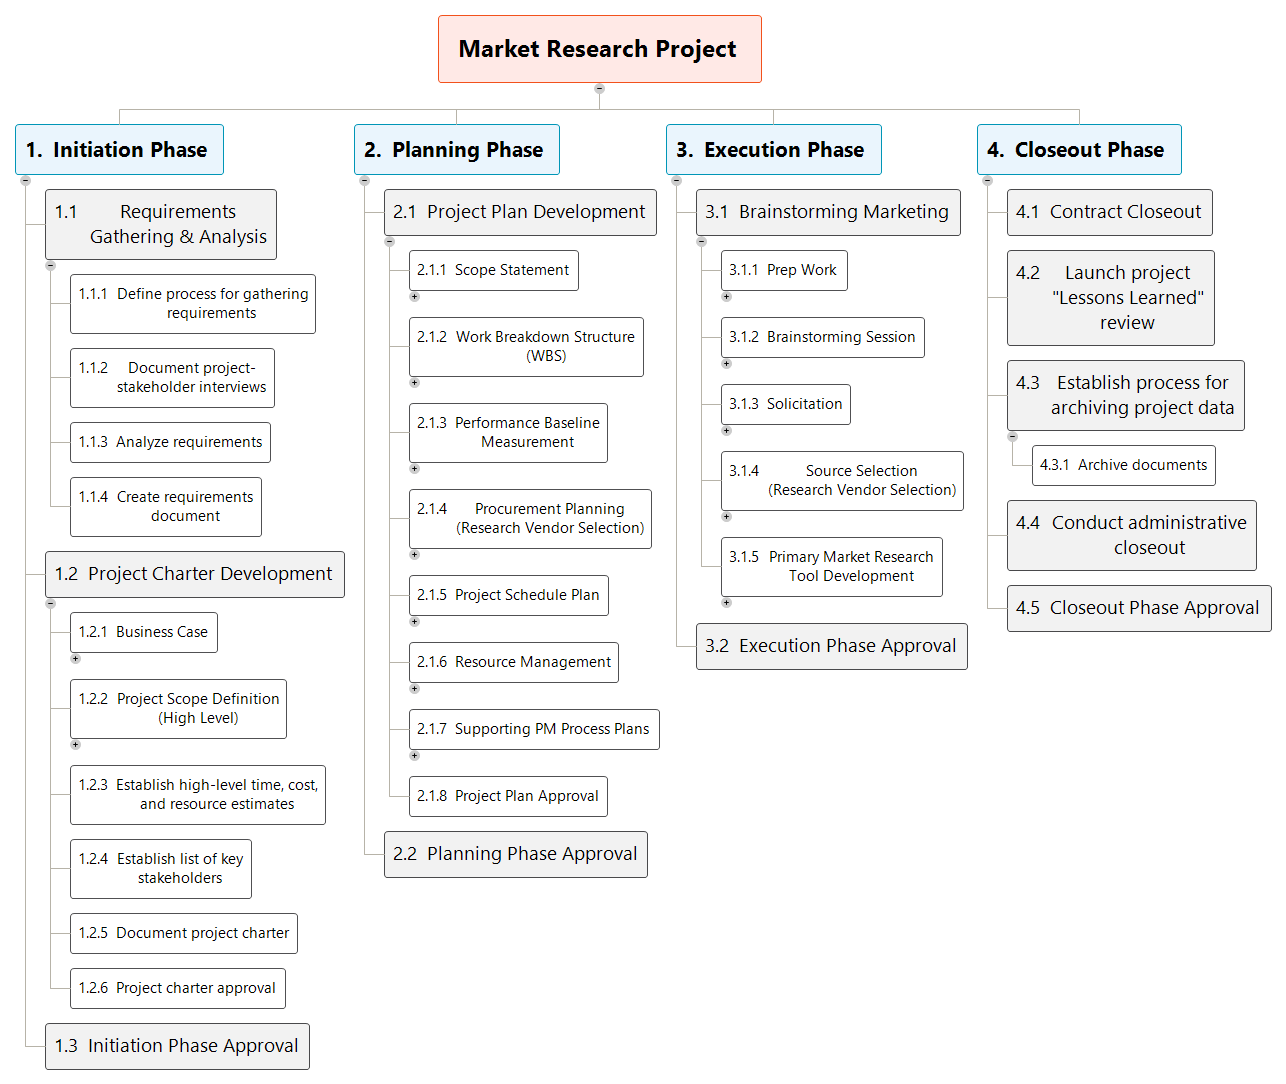 work breakdown structure template - market research